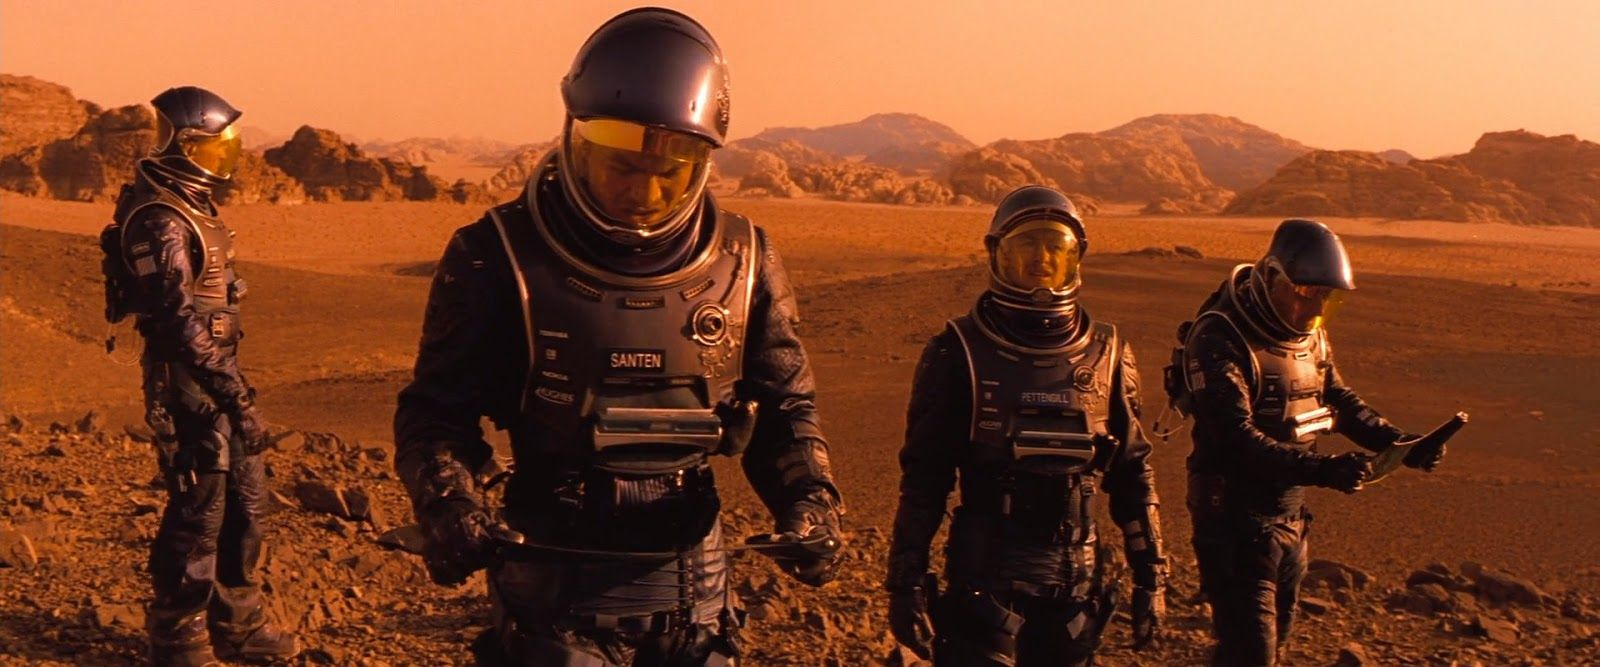 red planet movie - HD1920×800